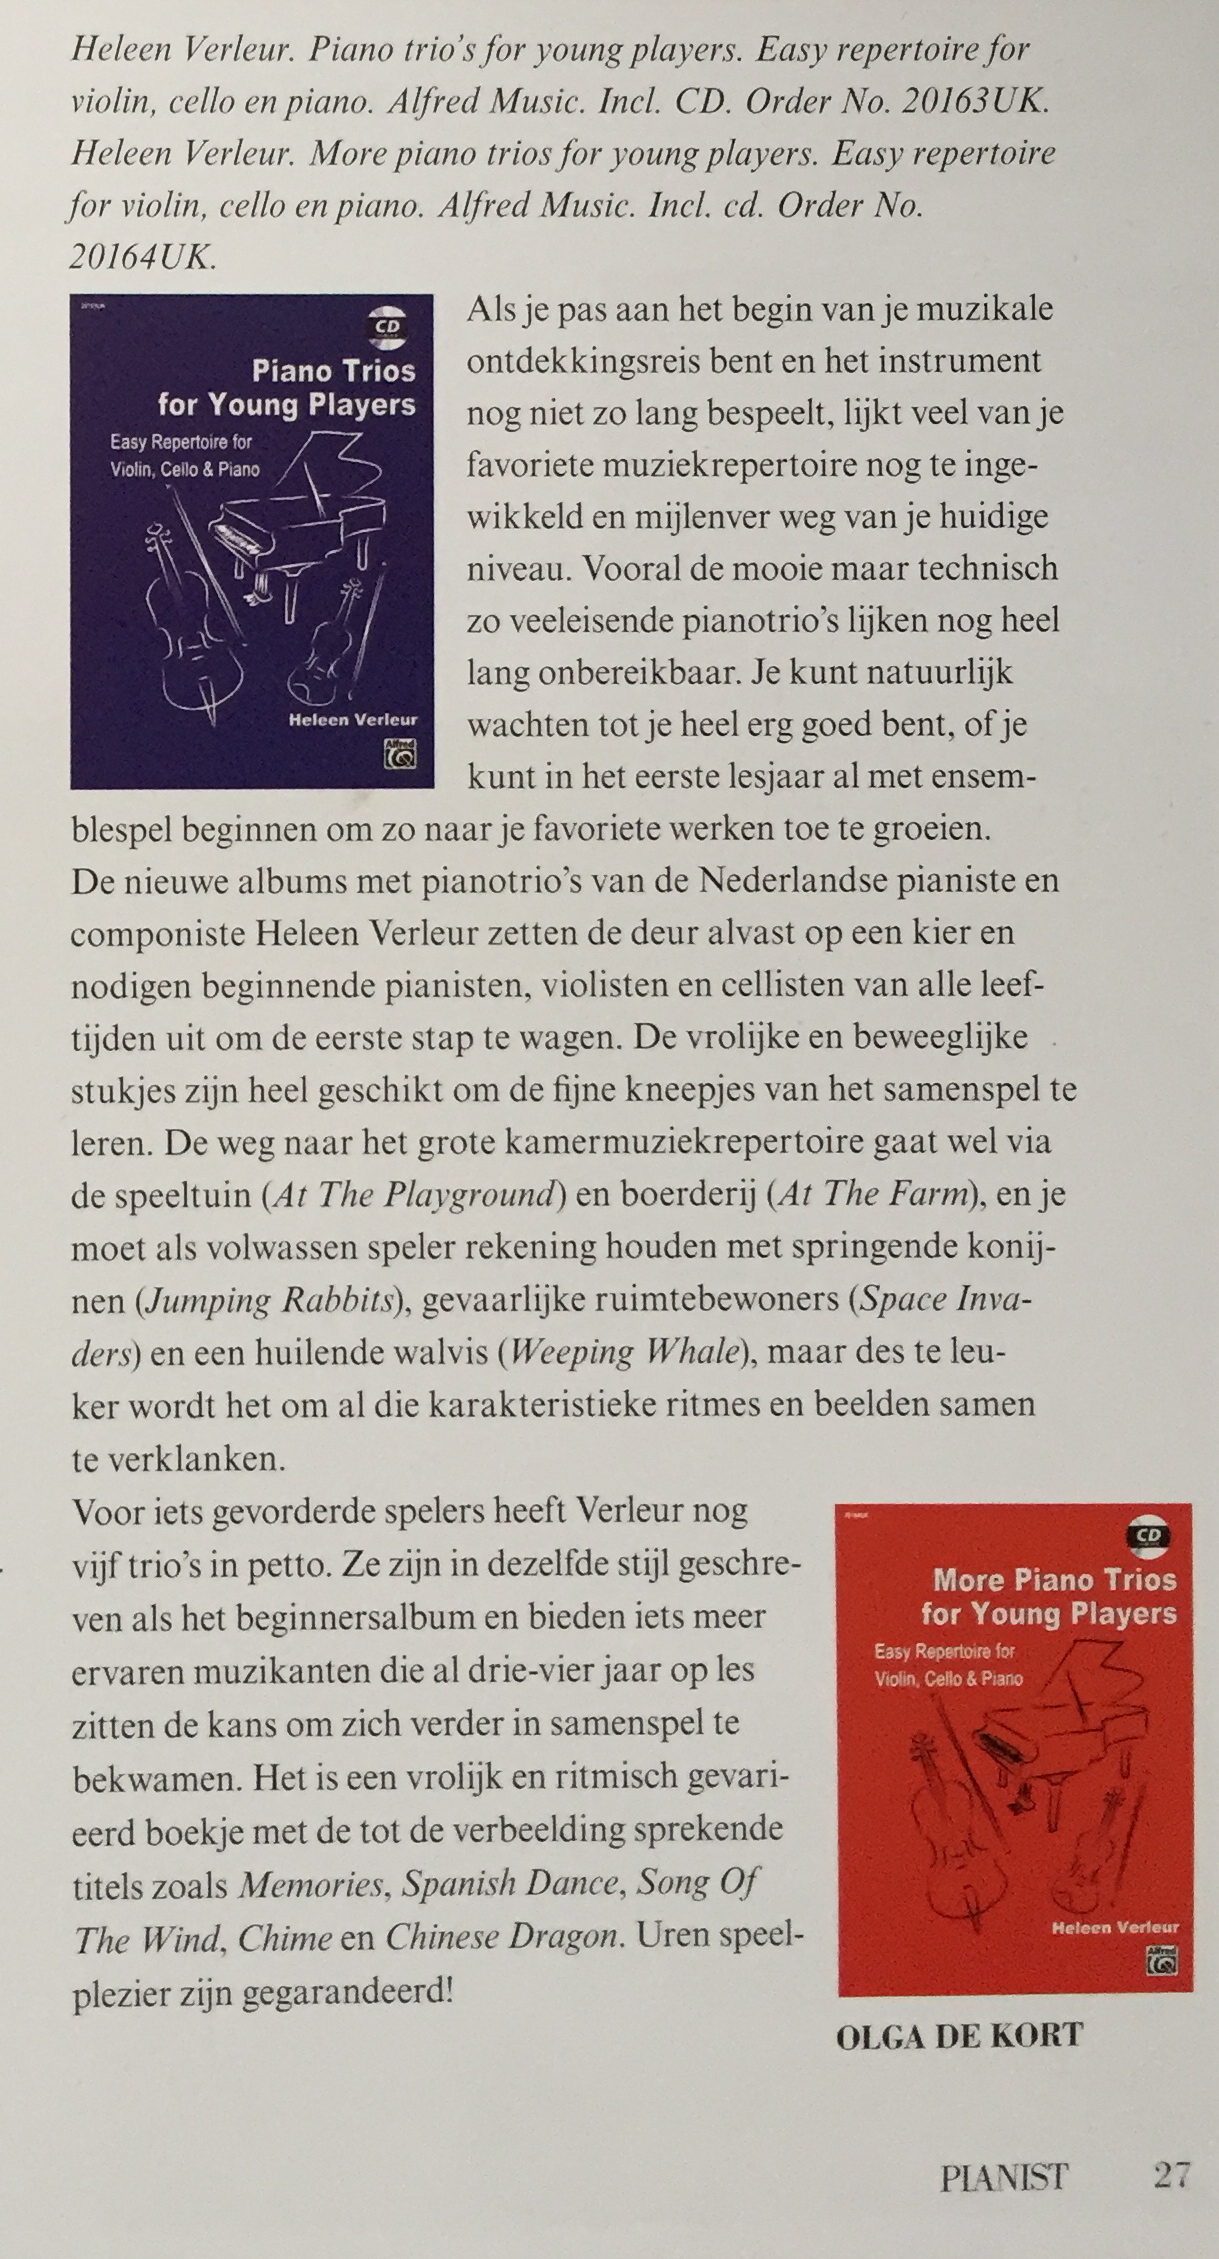 Recensie in 'Pianist' september 2016